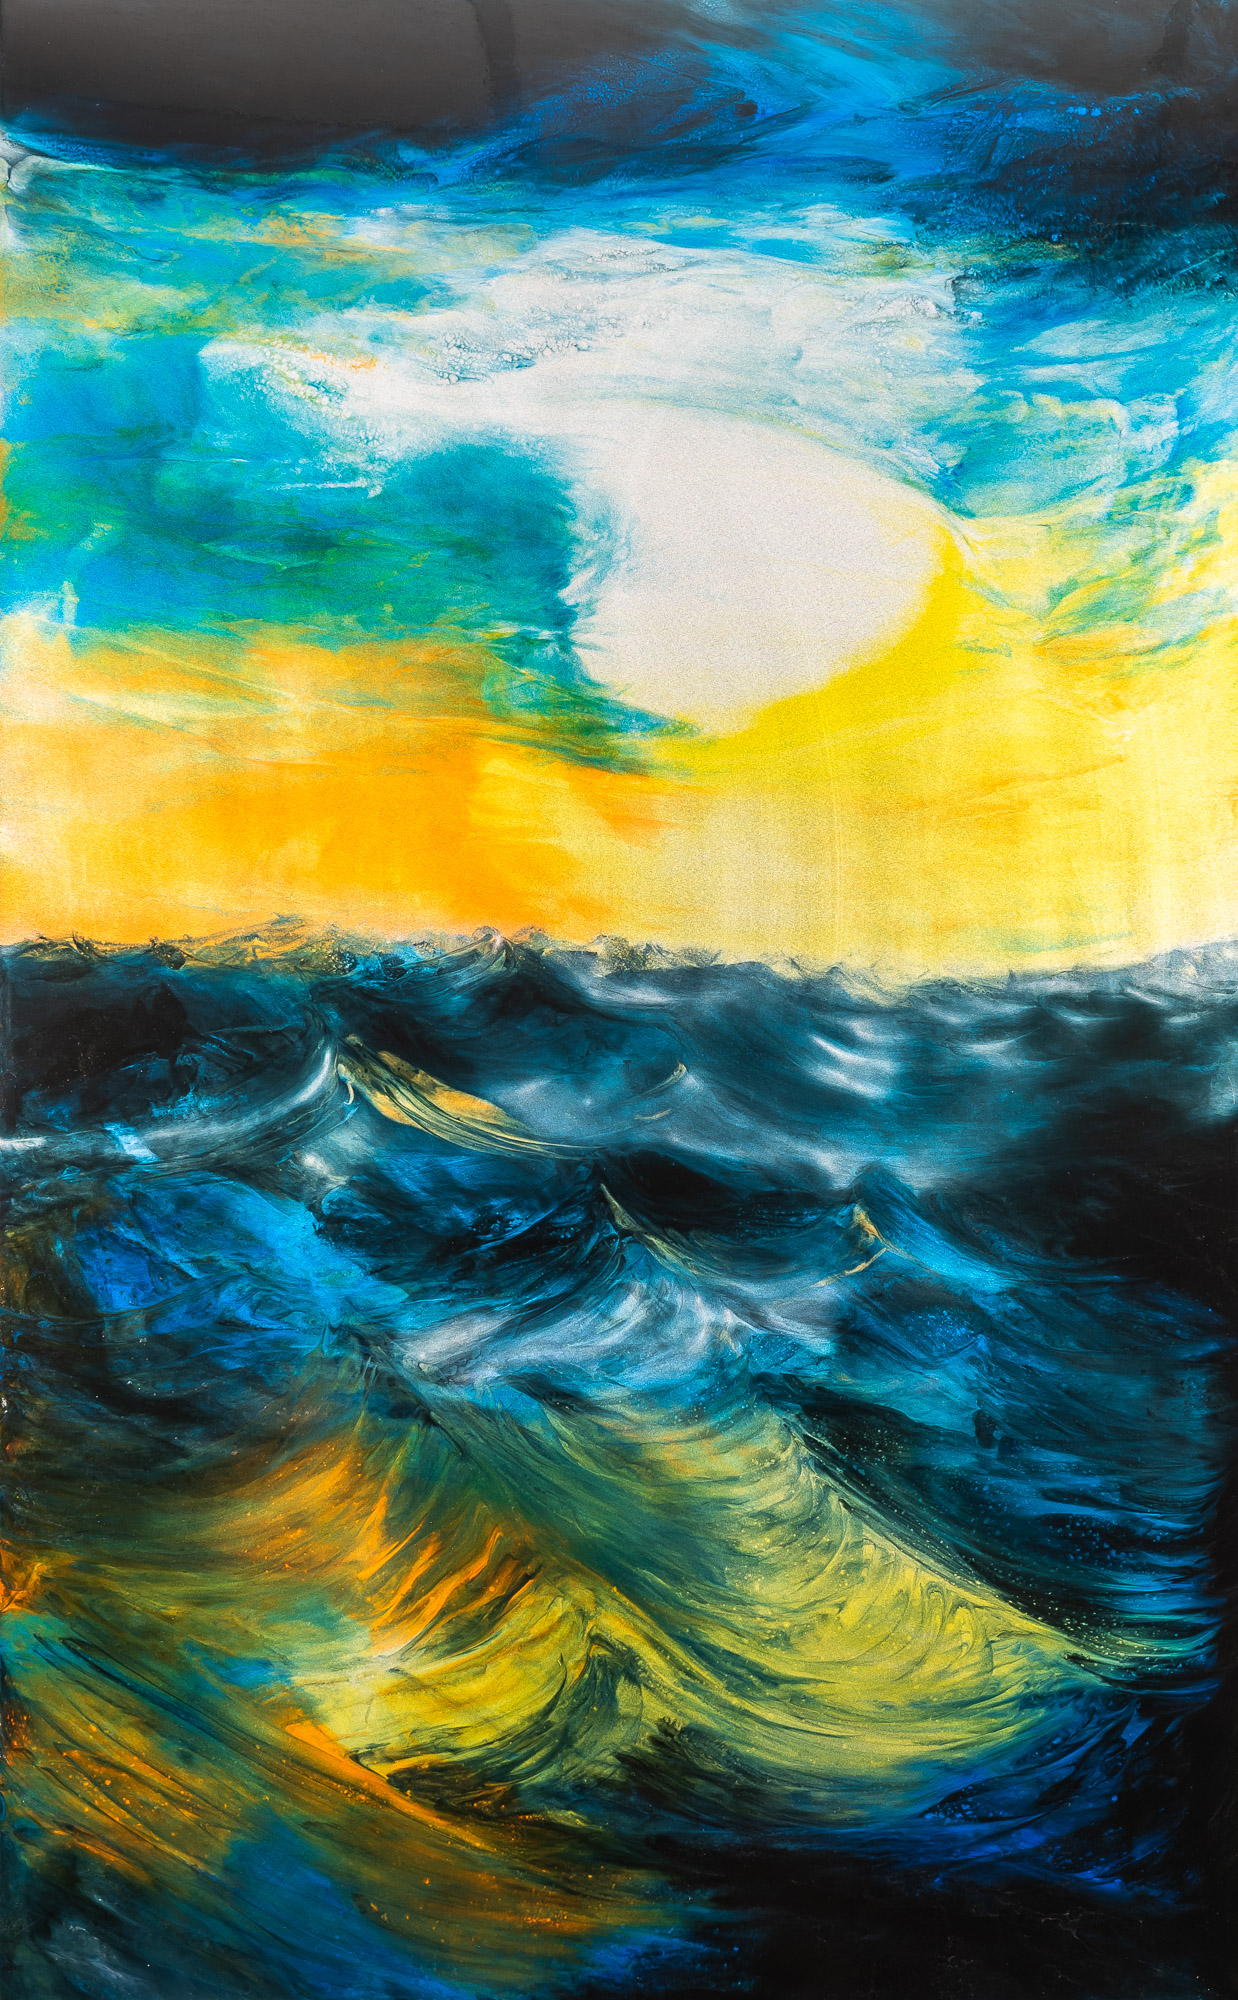 Twilight On The Ocean by Paul Kenton, UK Contemporary artist, an Original Seascape Sunset Painting from his Seascapes and Mountainscapes Collection